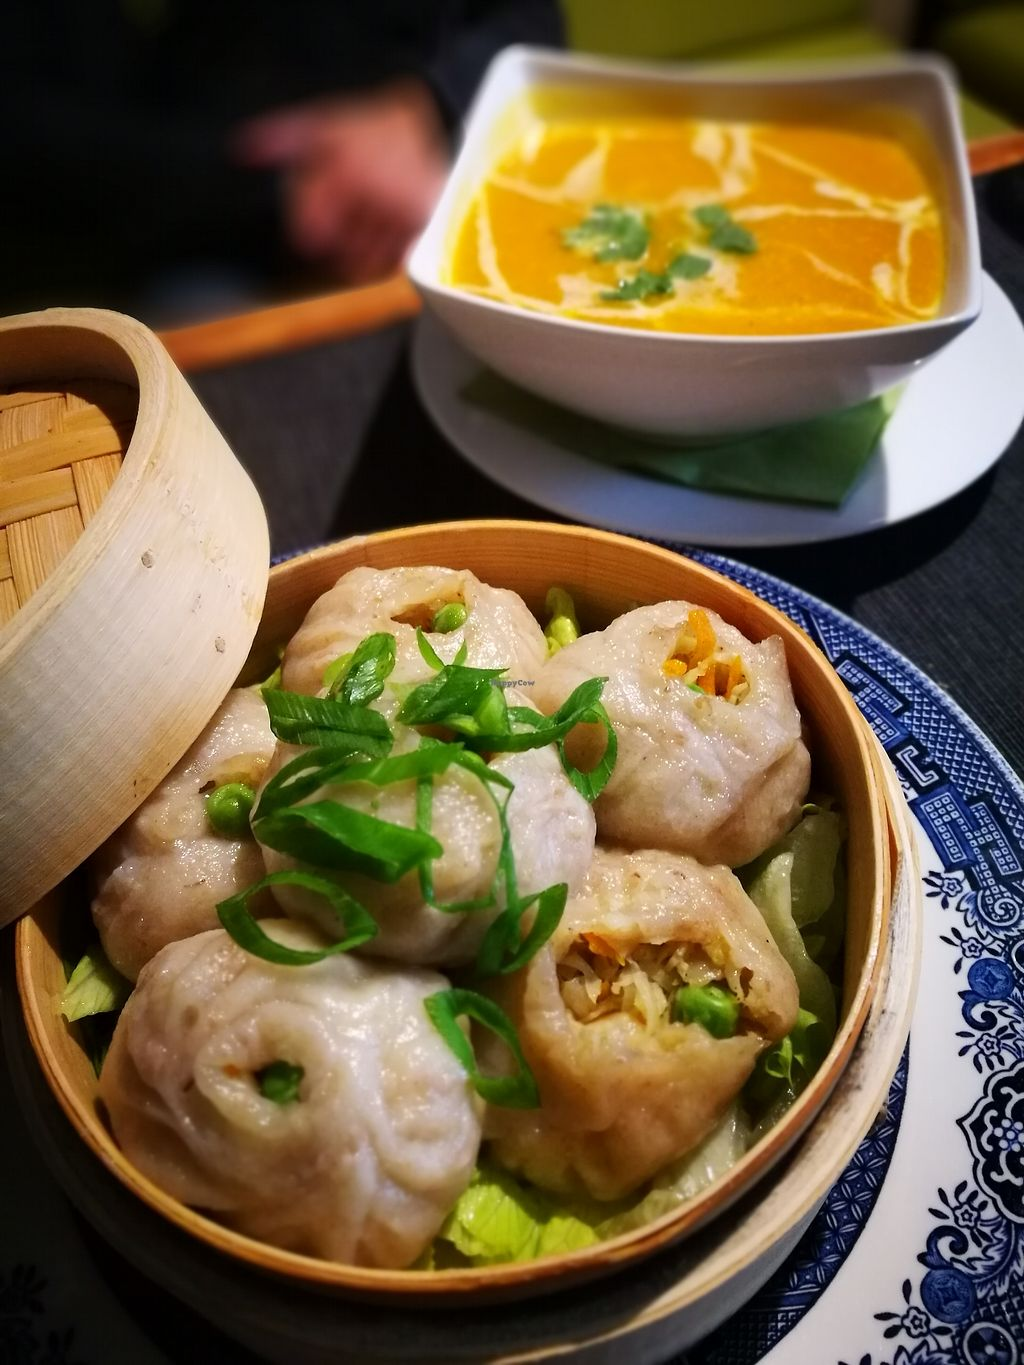 "Photo of Pod Norenami  by <a href=""/members/profile/k-girl80"">k-girl80</a> <br/>two first courses: far back - seasonal pumpking soup, up front - Momo, which is a type of South Asian dumpling <br/> October 12, 2017  - <a href='/contact/abuse/image/37682/314530'>Report</a>"